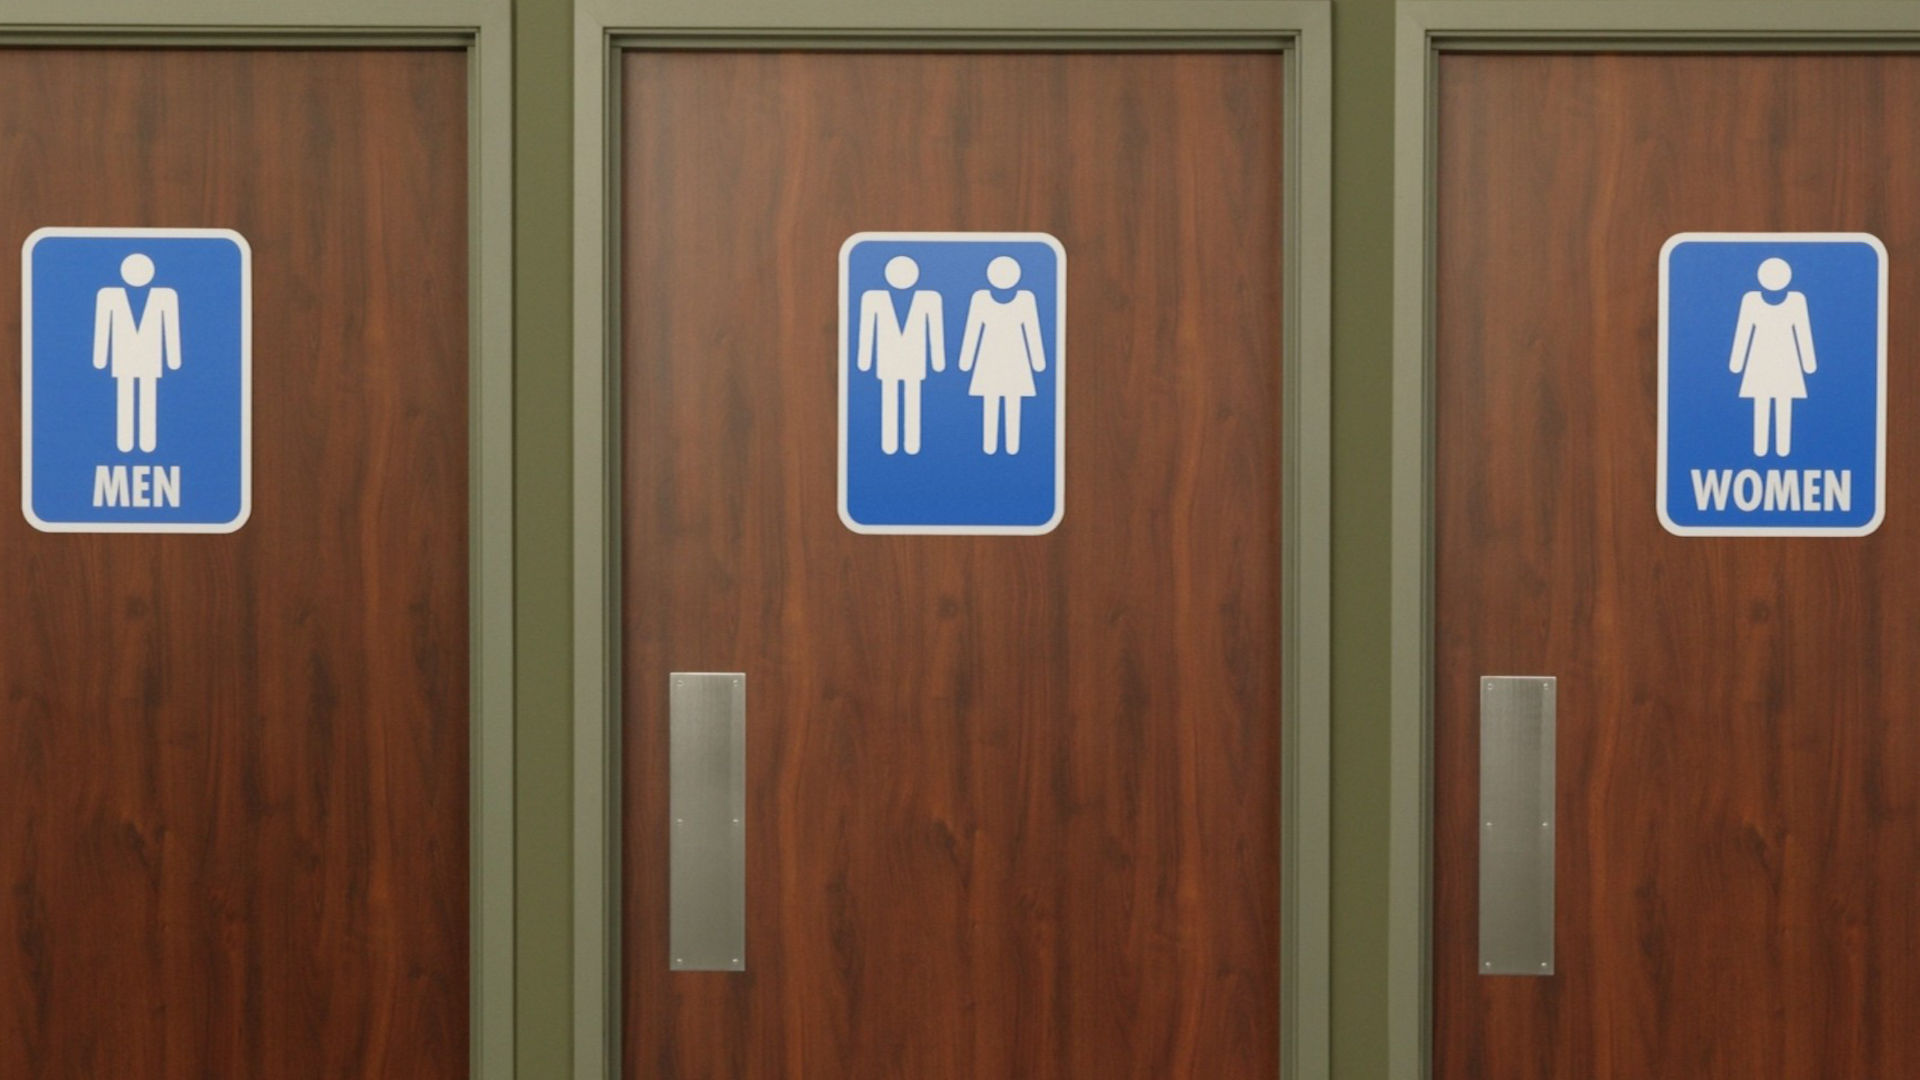 BathroomLaw